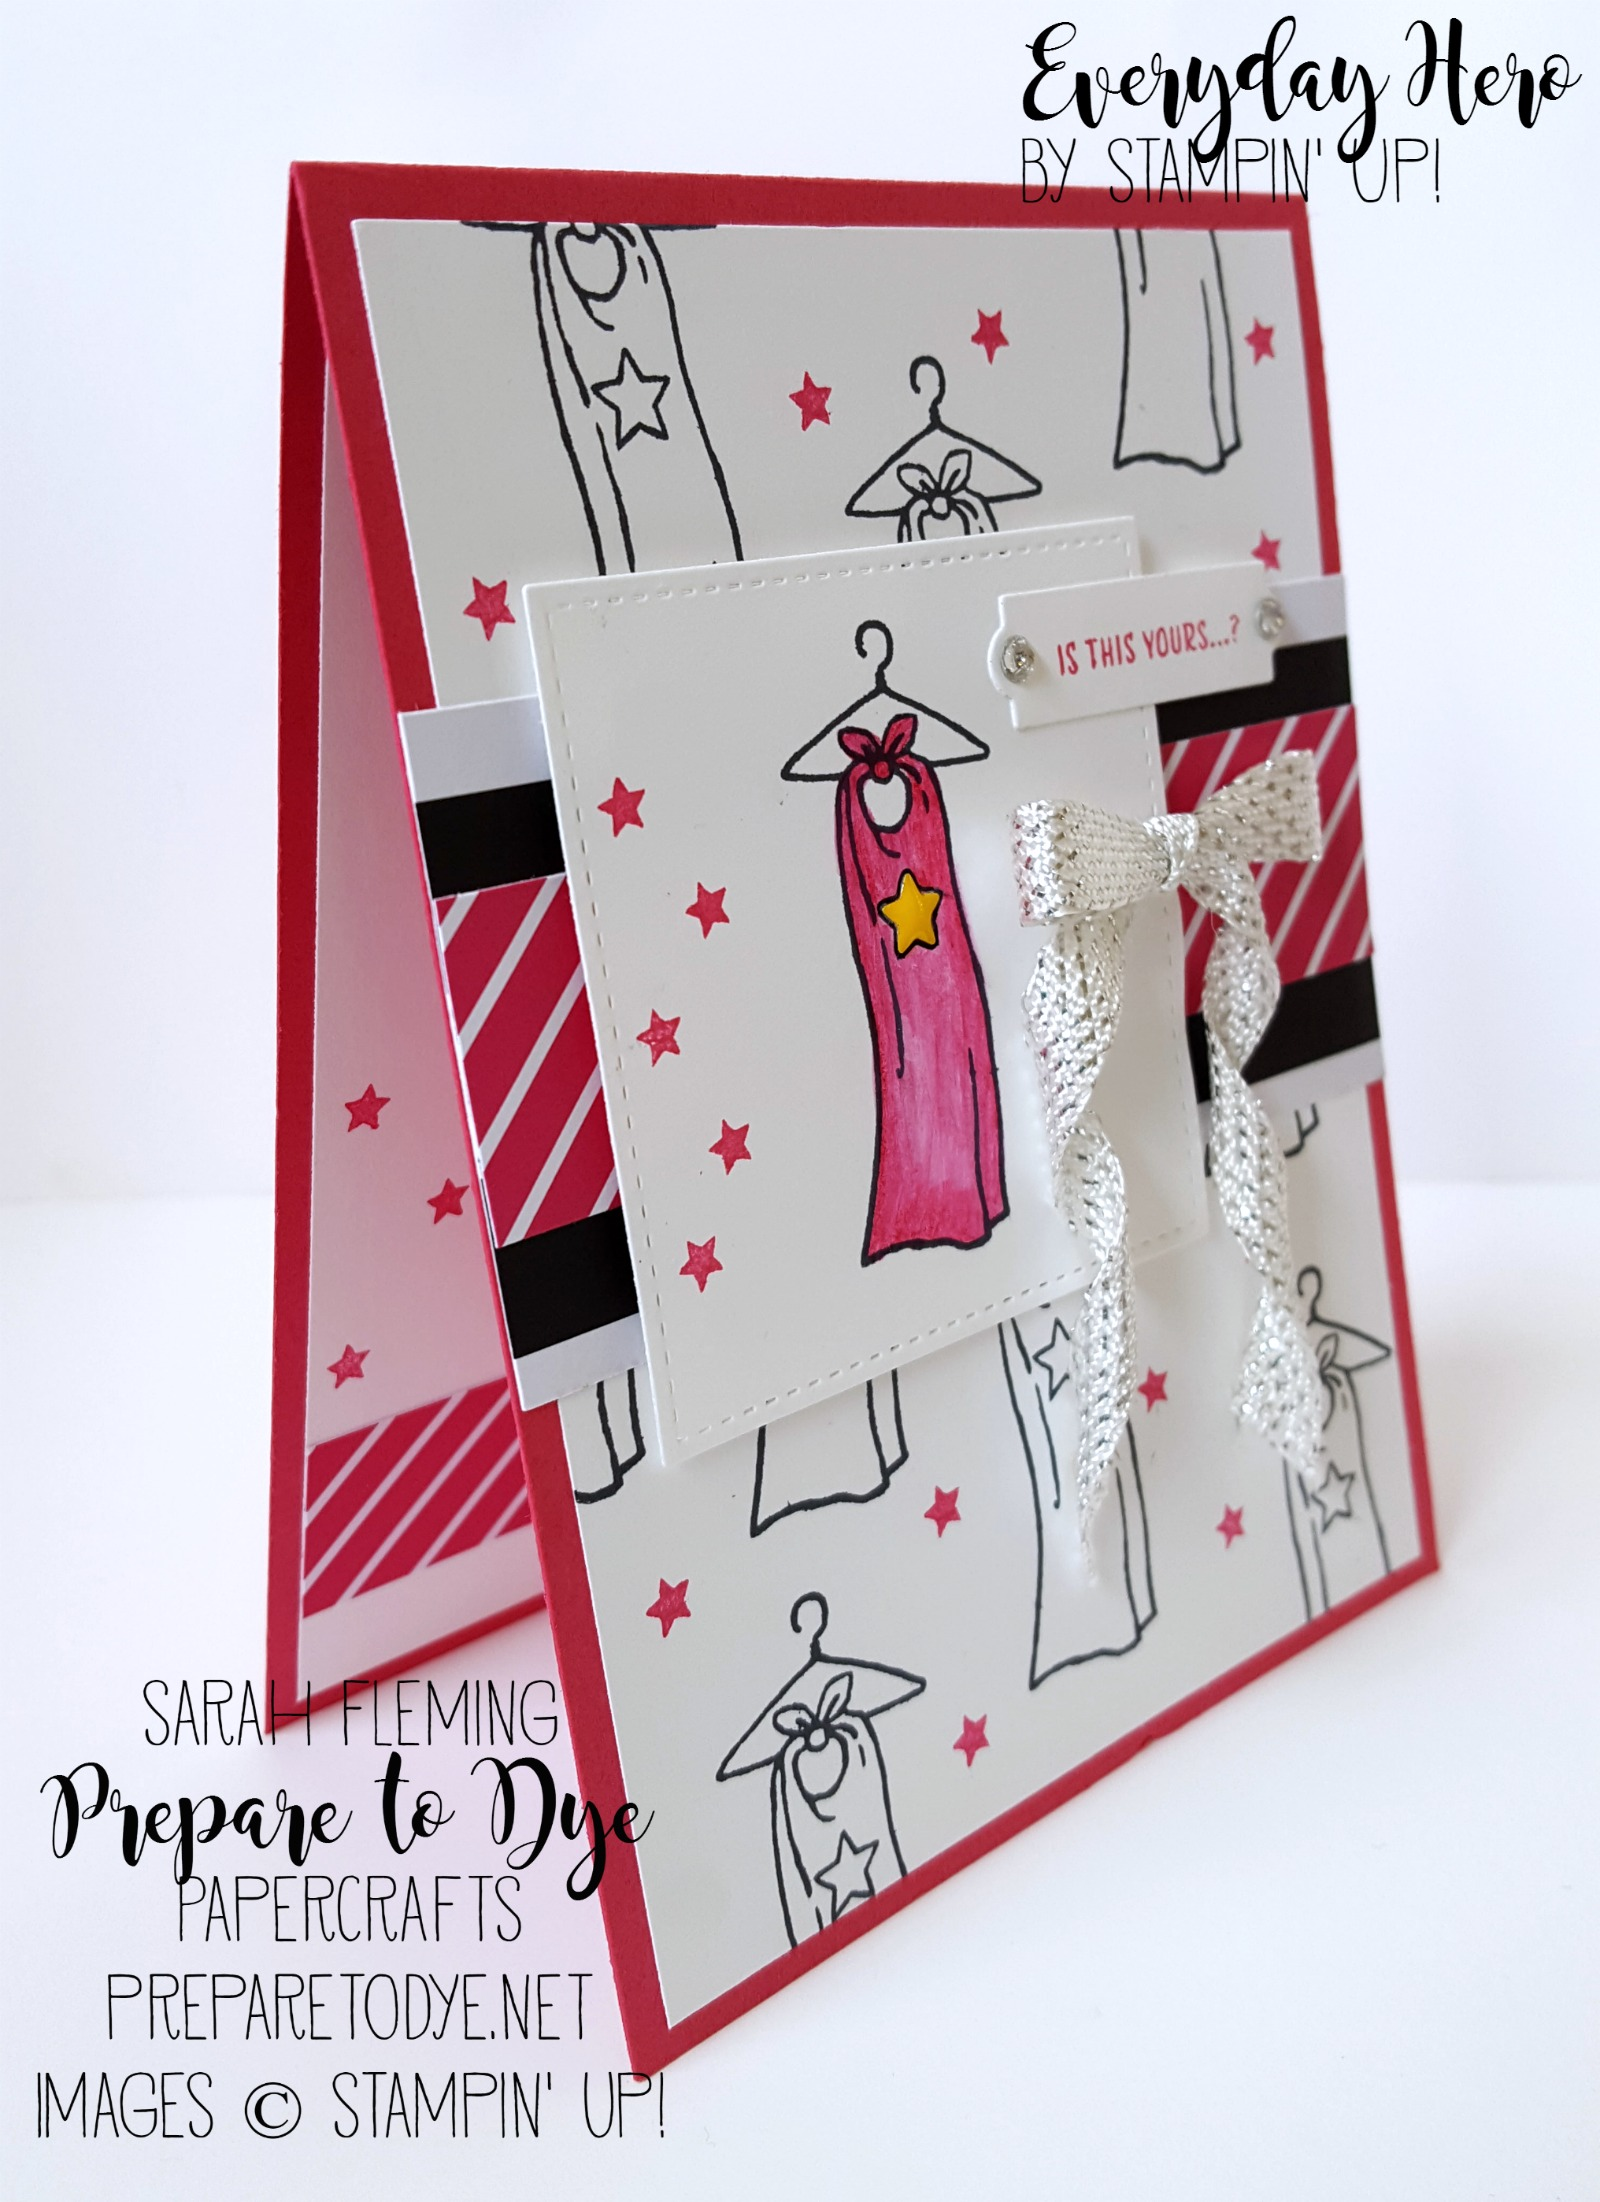 Stampin' Up! Everyday Hero stamp set - superhero cape handmade card - Sarah Fleming - Prepare to Dye Papercrafts